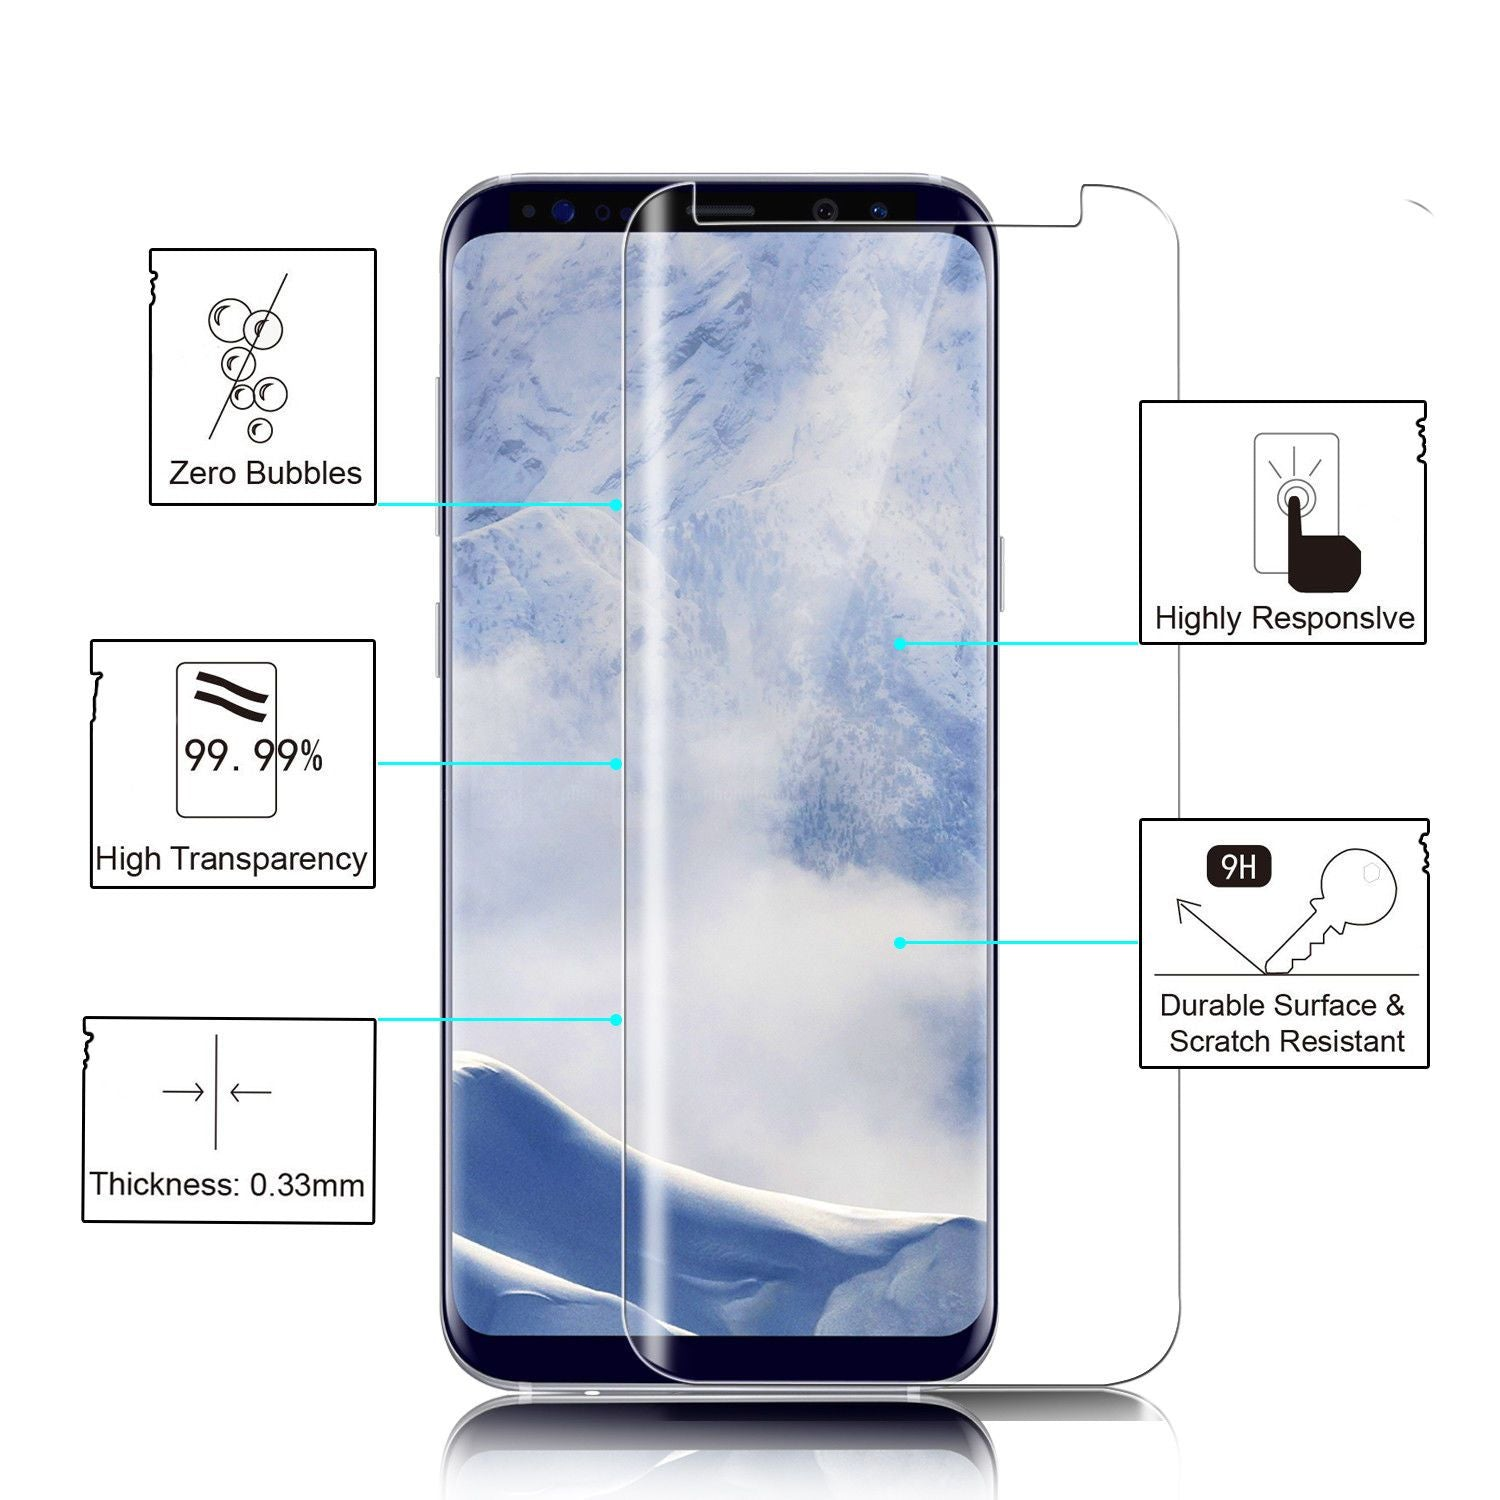 Buy 1 Get 1 FREE: Galaxy A7 Magnetic Case + Creative Case